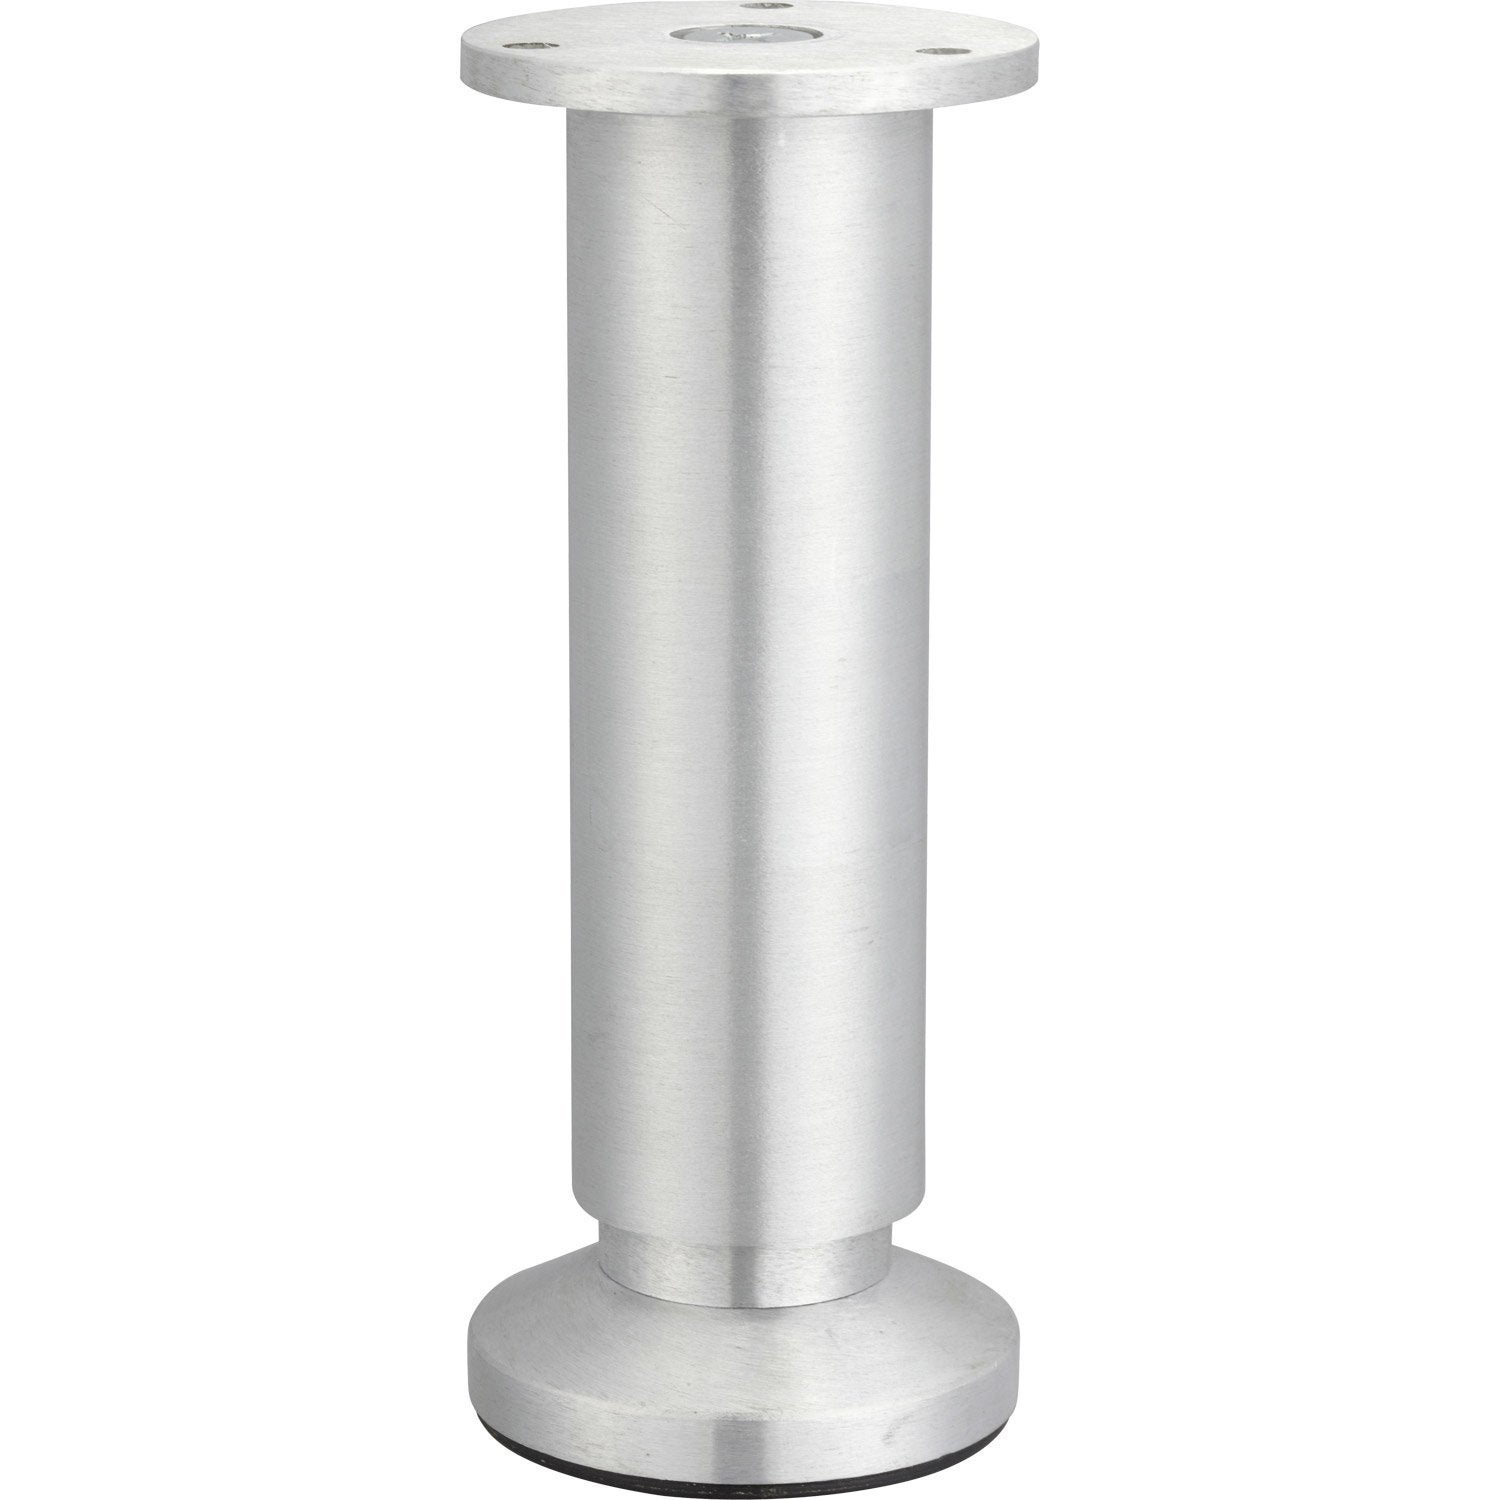 Pied de meuble cylindrique r glable aluminium bross gris de 15 17 cm leroy merlin - Pied de table telescopique ...